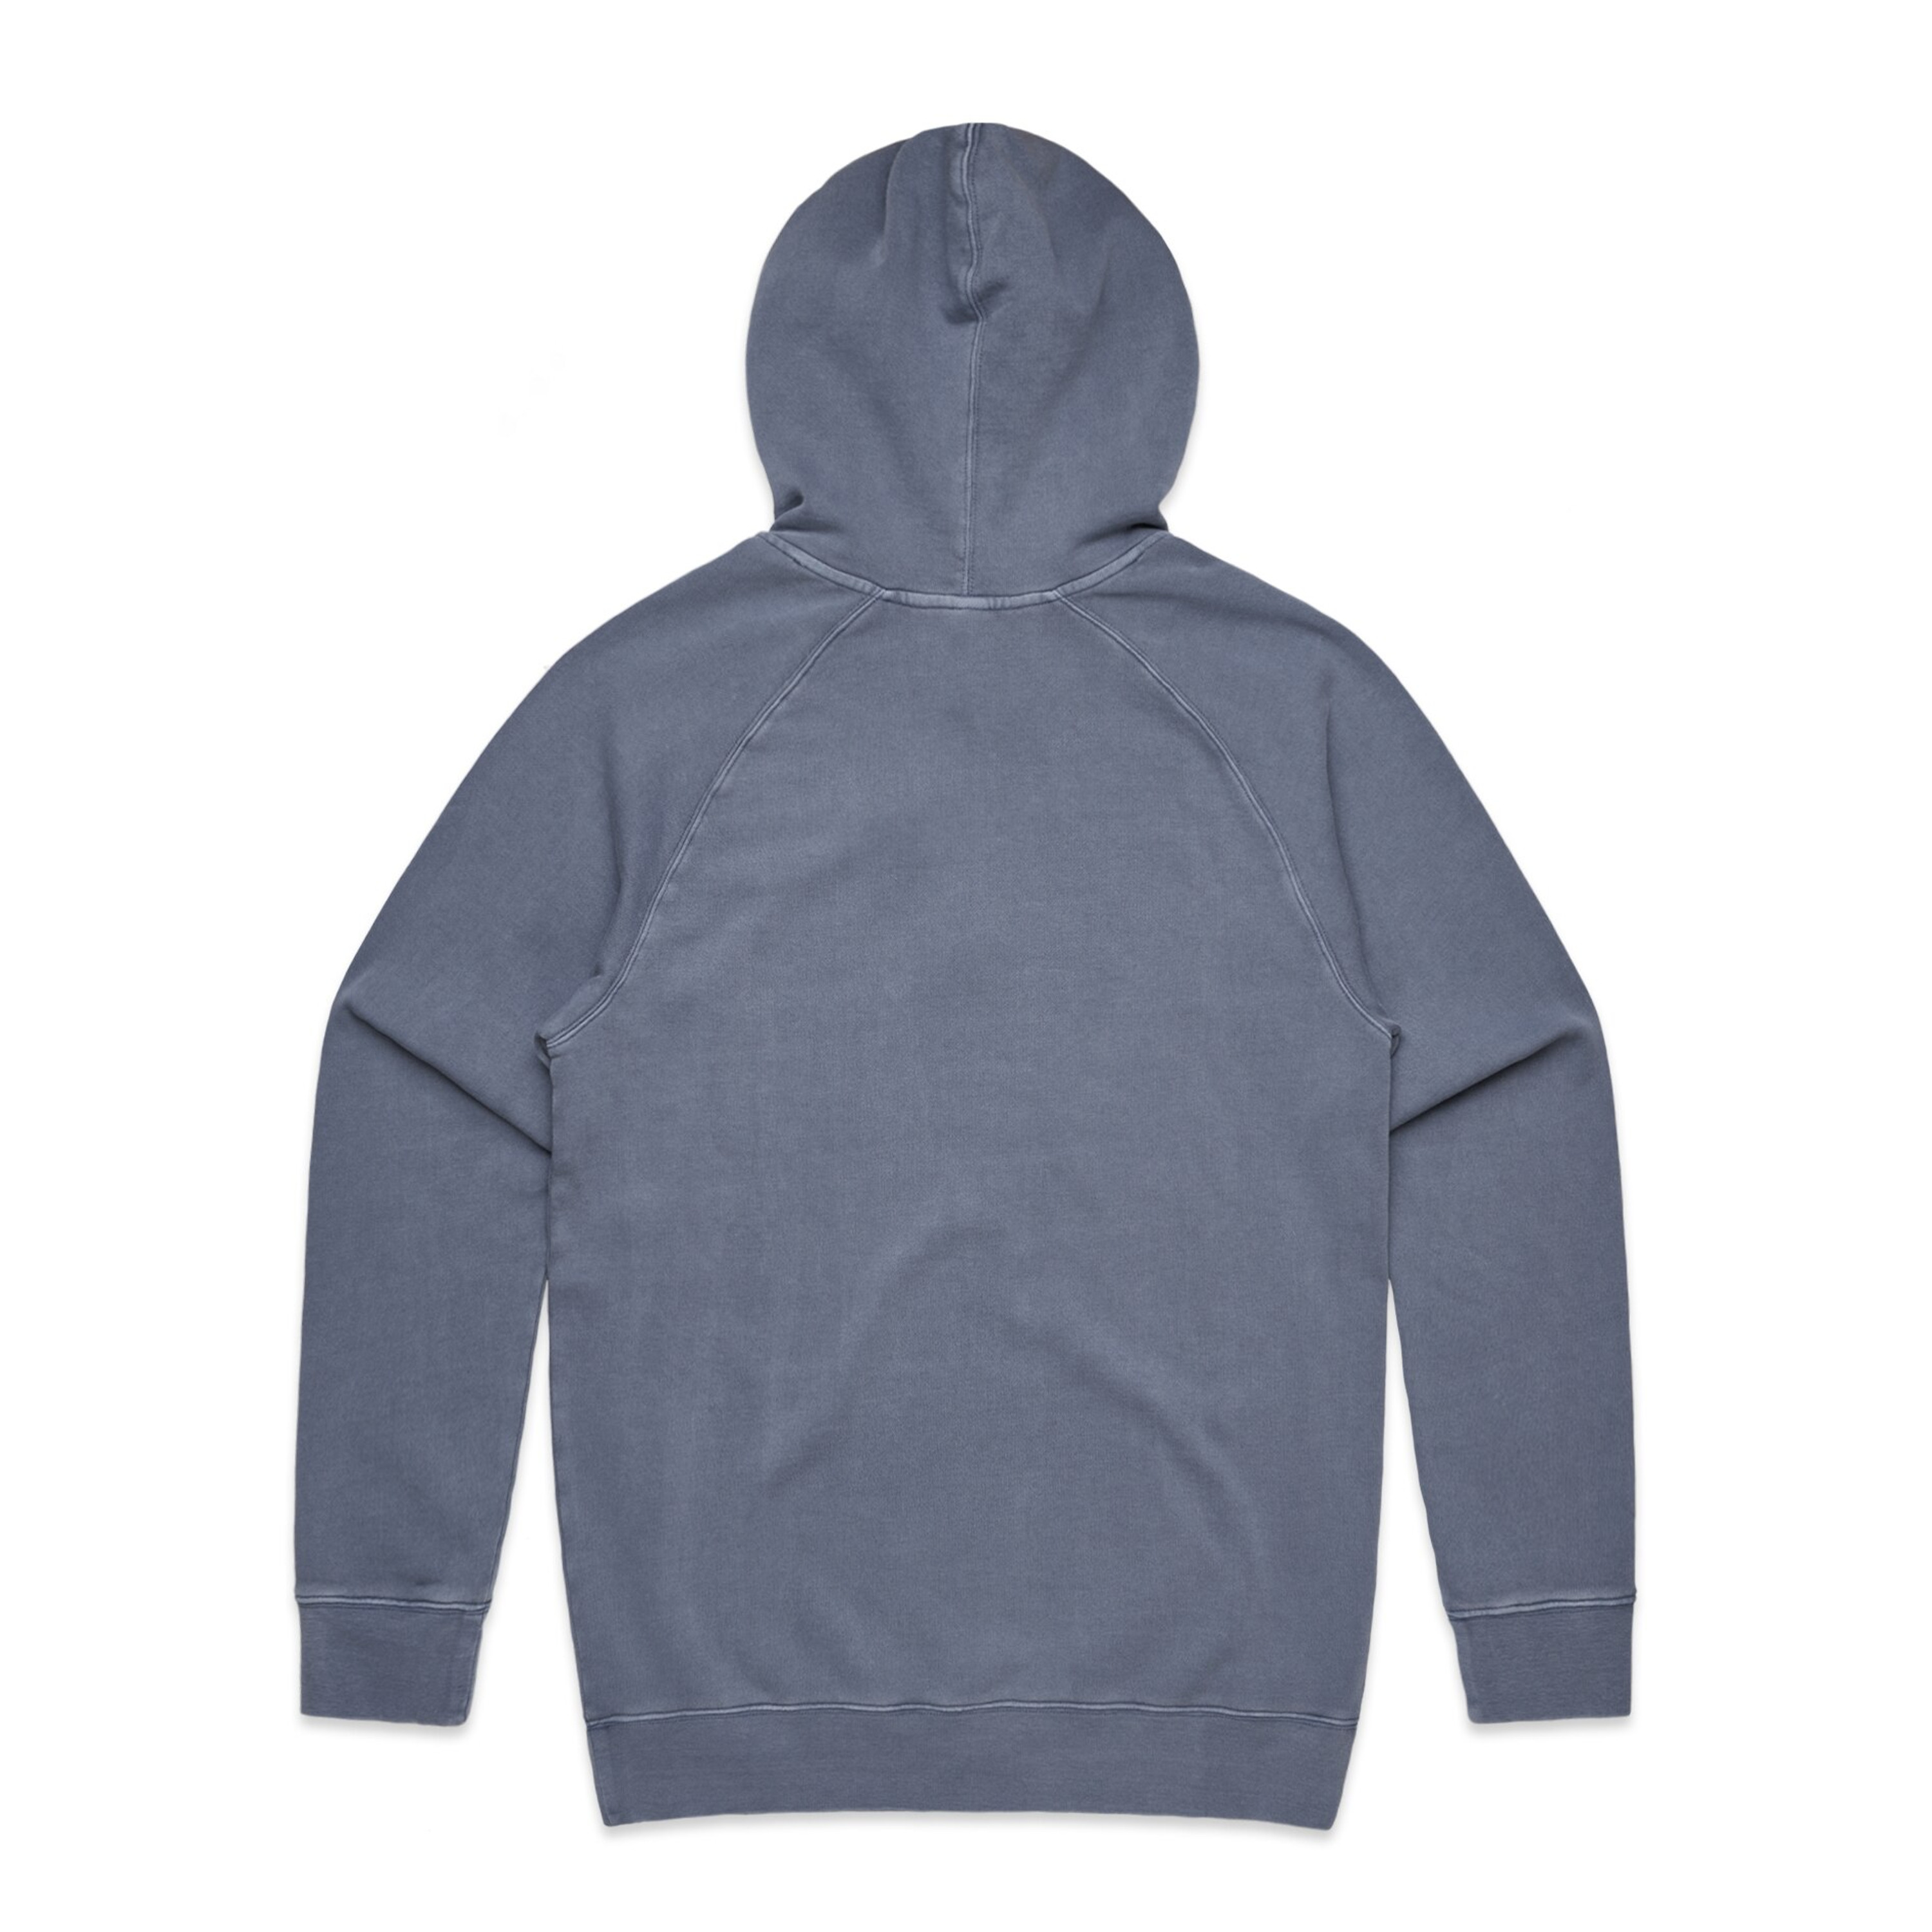 FADED BLUE - BACK